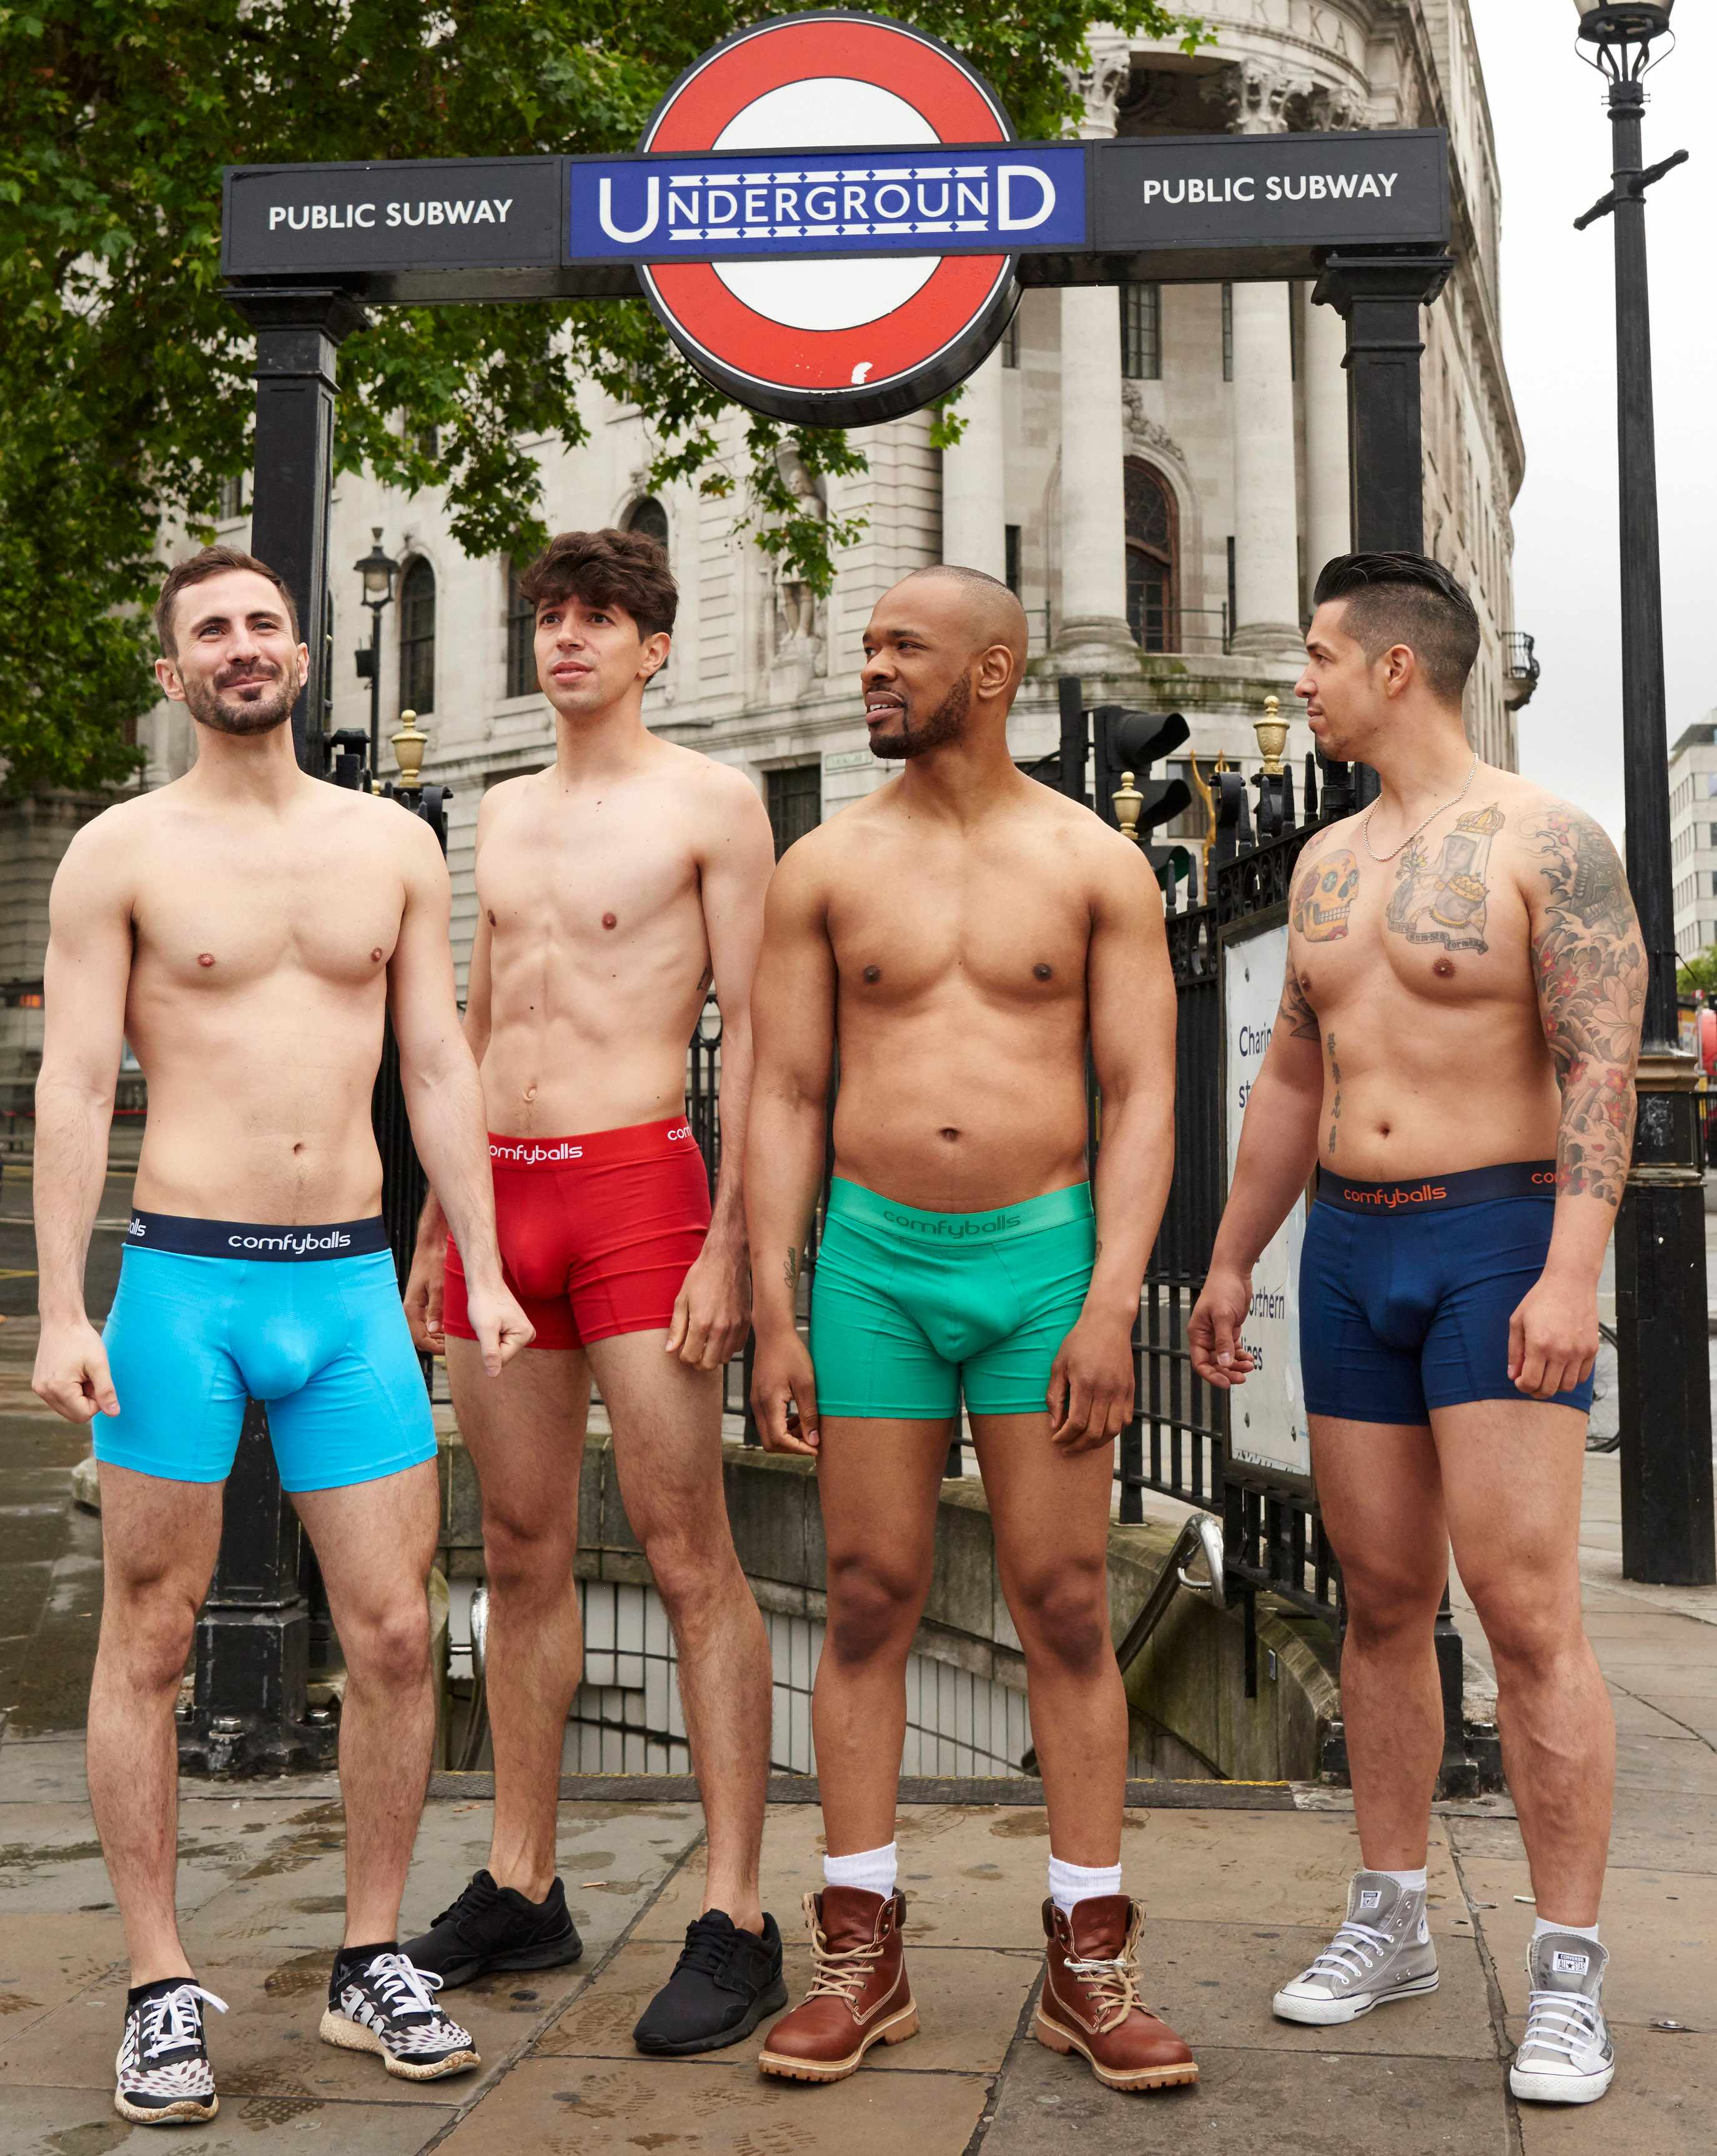 Four men in Comfyballs Underpanst stand in front of a London Underground station